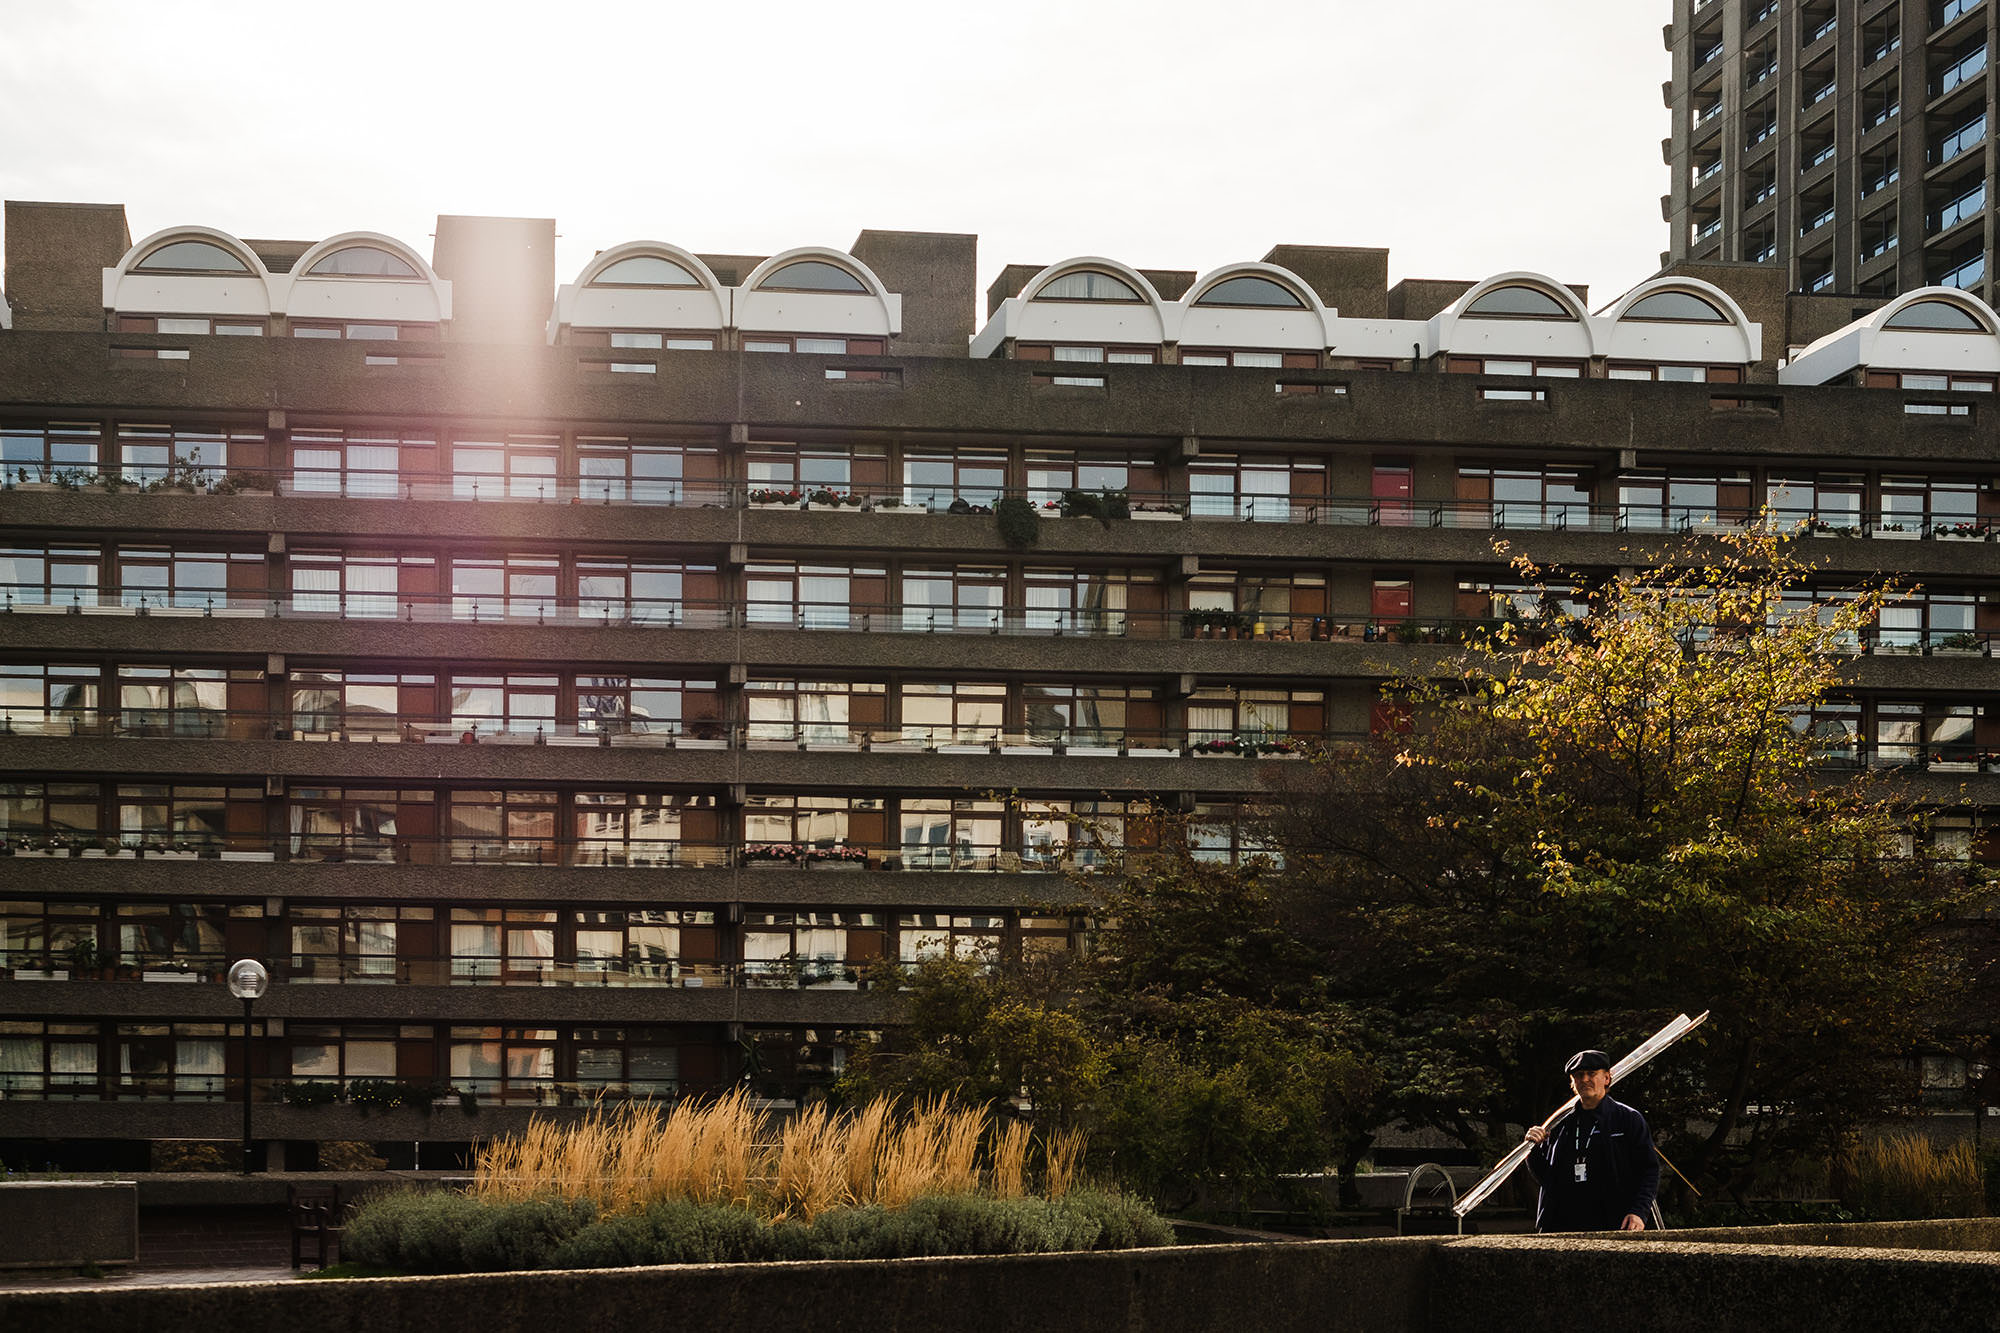 Barbican centre street photography